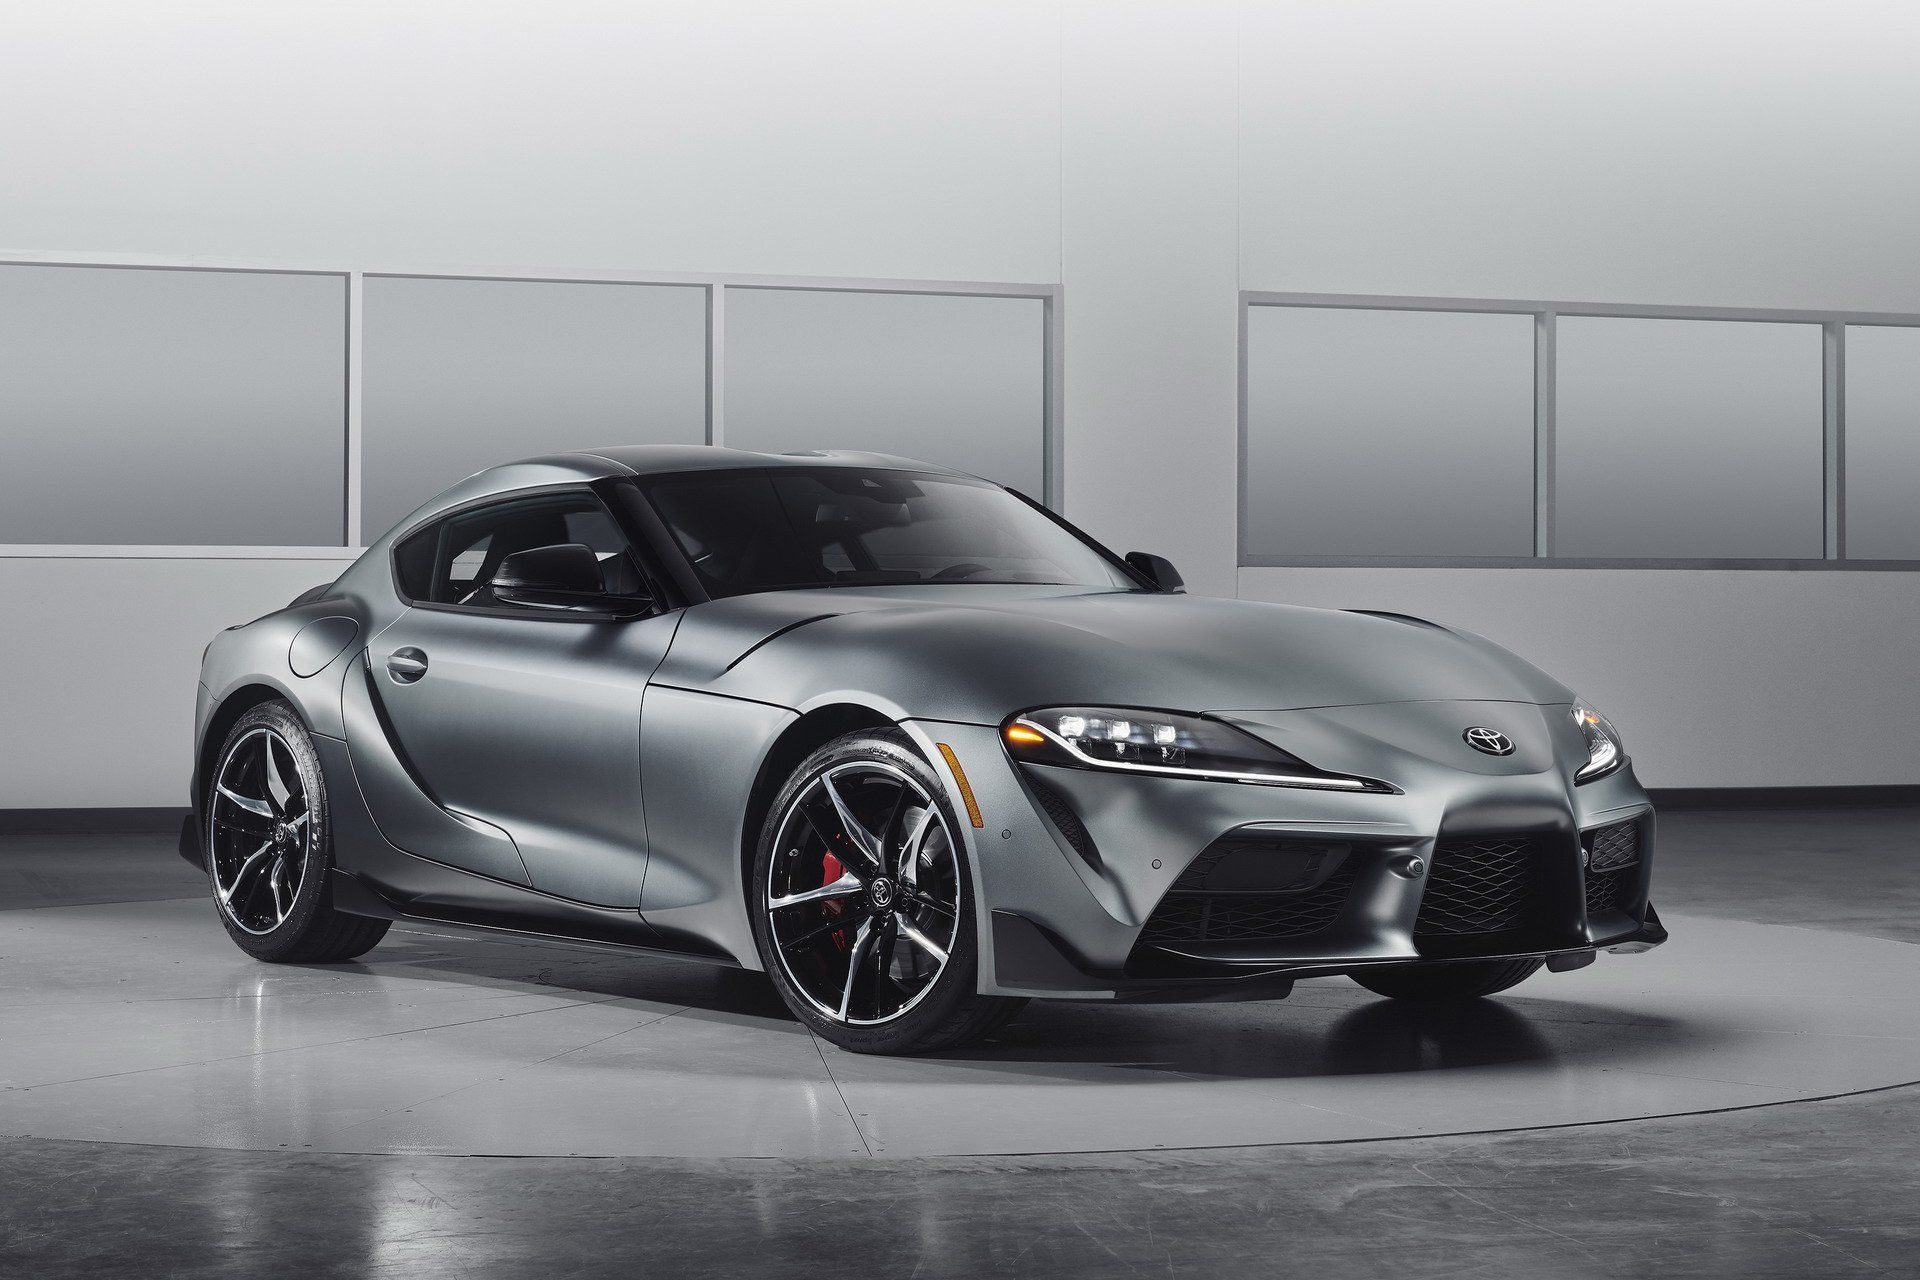 2020 Toyota Gr Supra Prices Officially Released Start From 49 990 In The U S Carscoops New Toyota Supra Toyota Supra Toyota Cars